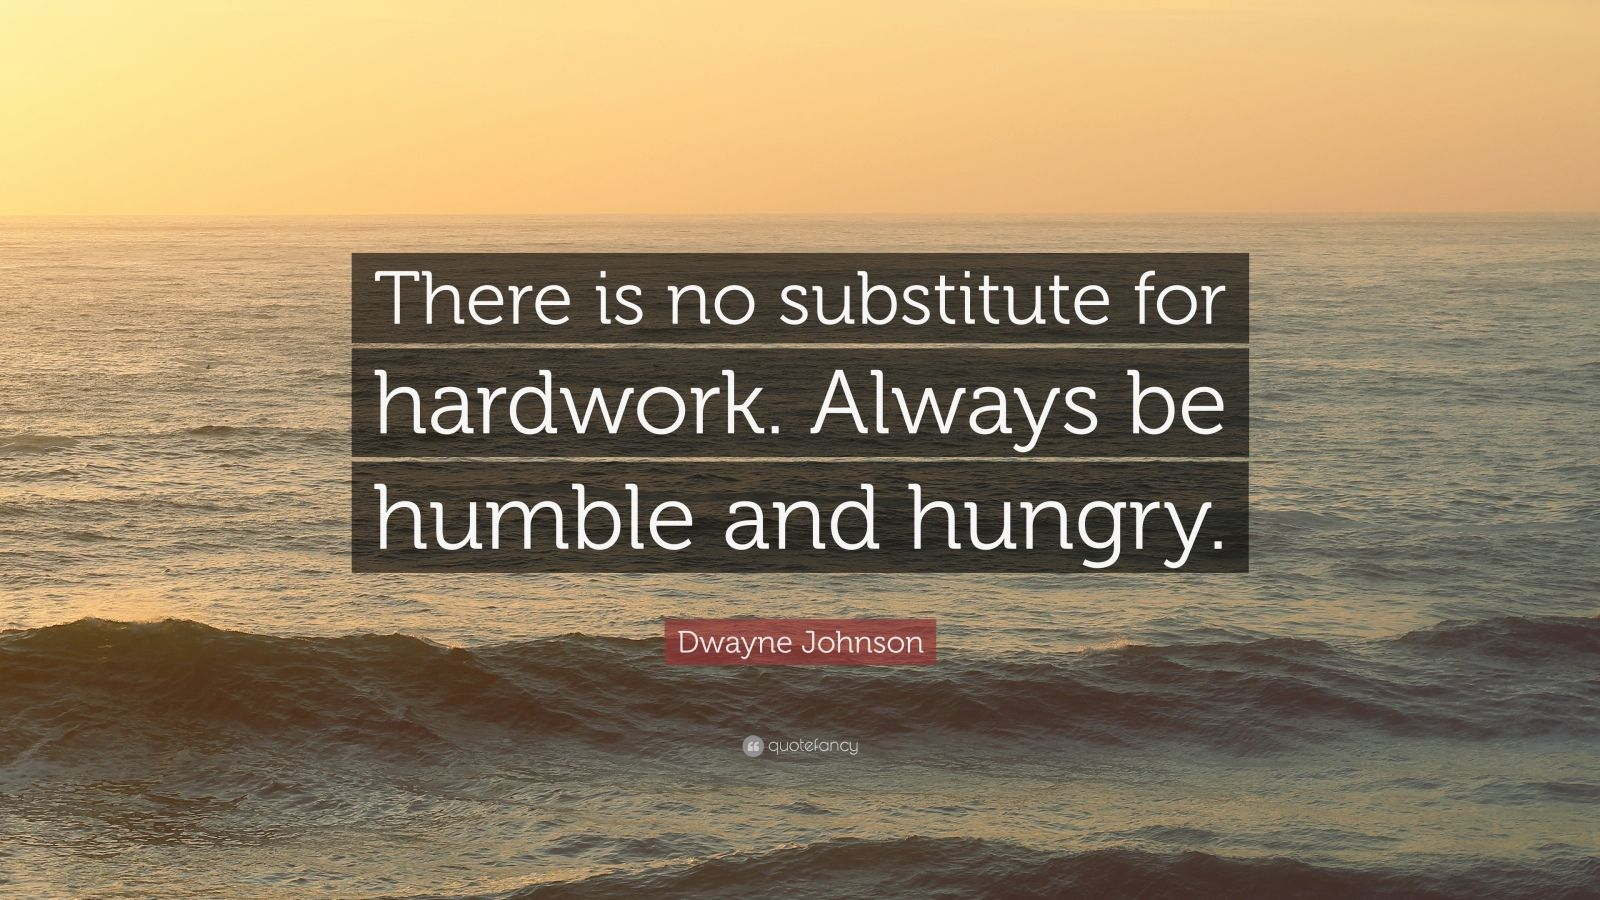 dwayne johnson quote   u201cthere is no substitute for hardwork  always be humble and hungry  u201d  12